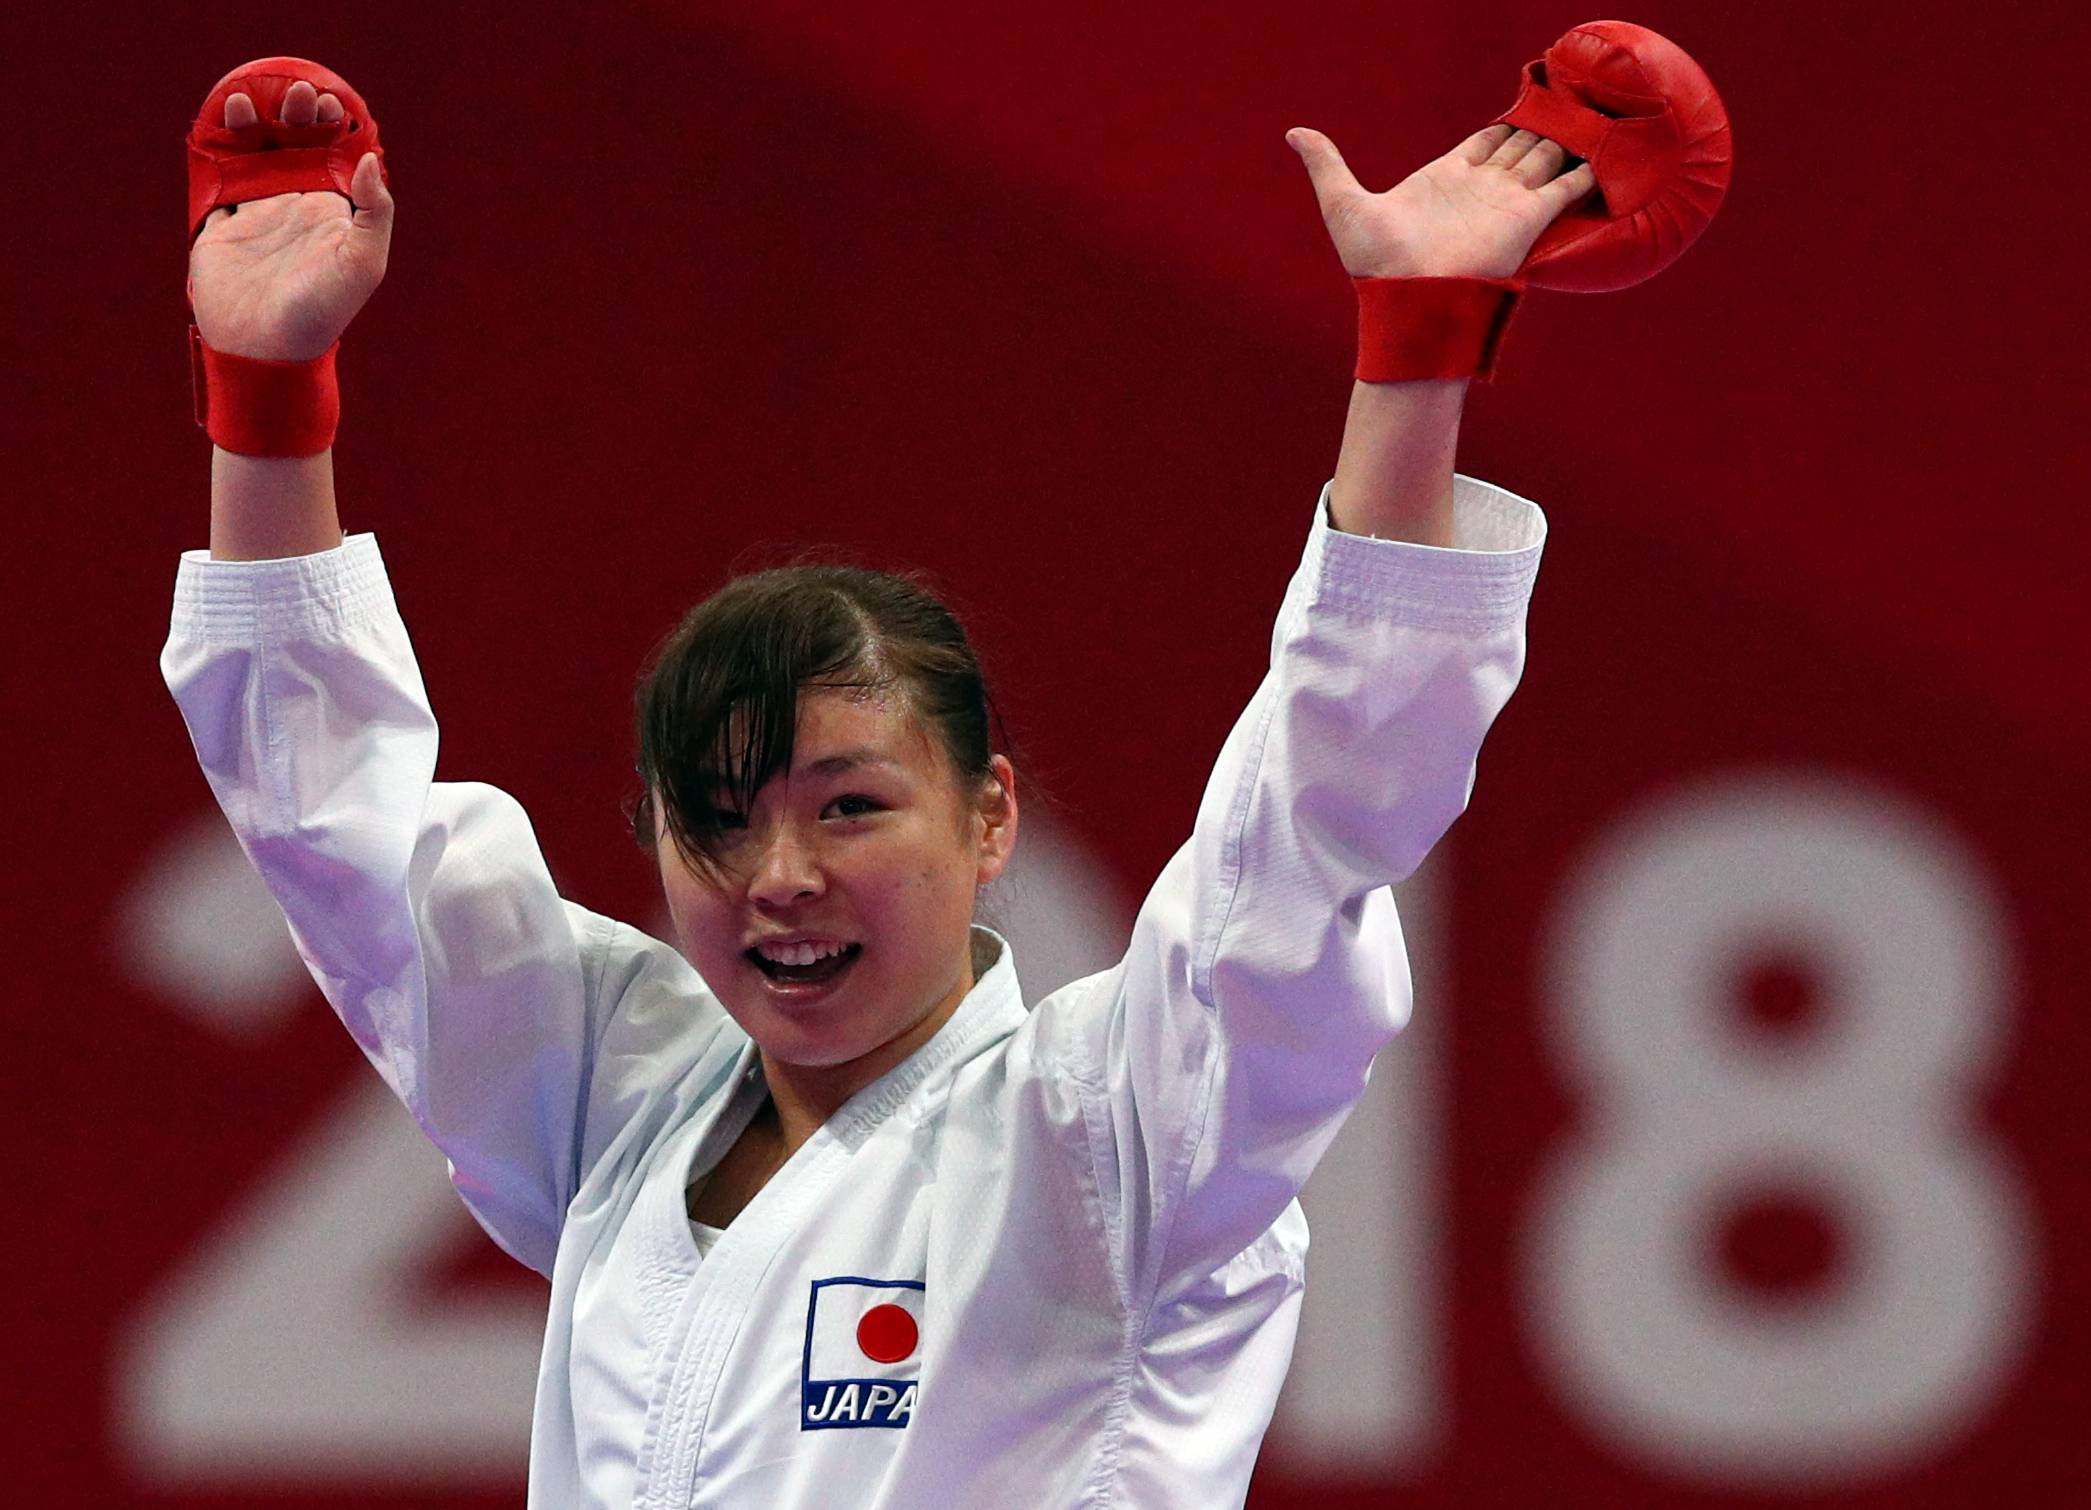 Ayumi Uekusa, seen in 2018, was verbally abused by Japan's karate national team technical director in 2016, according to sources with knowledge of the matter. | REUTERS